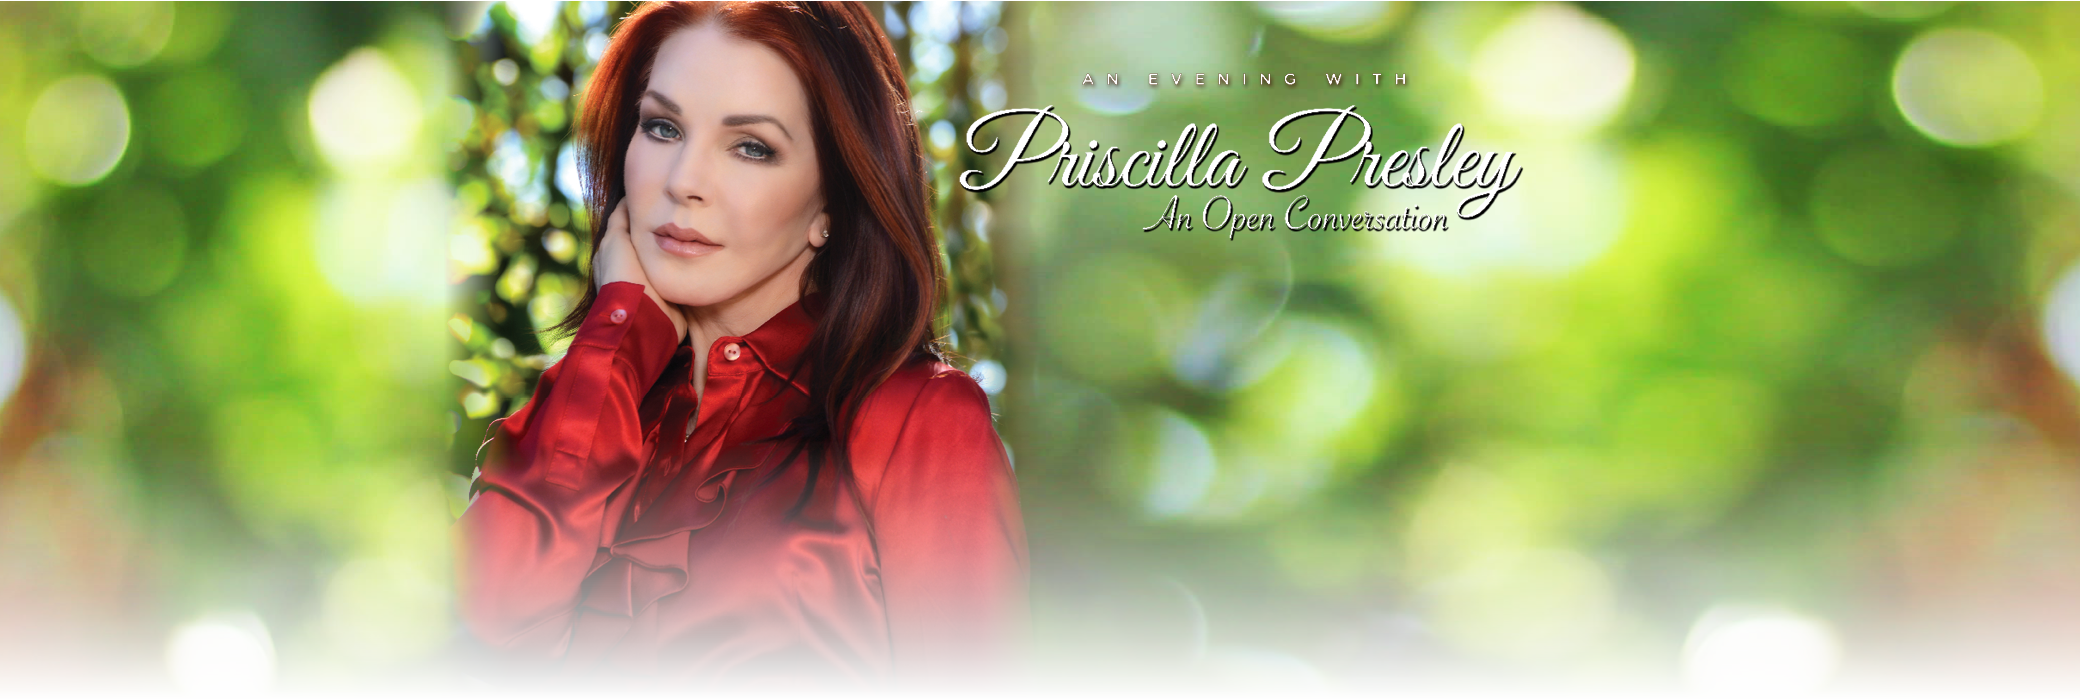 An Evening With Priscilla Presley: An Open Conversation